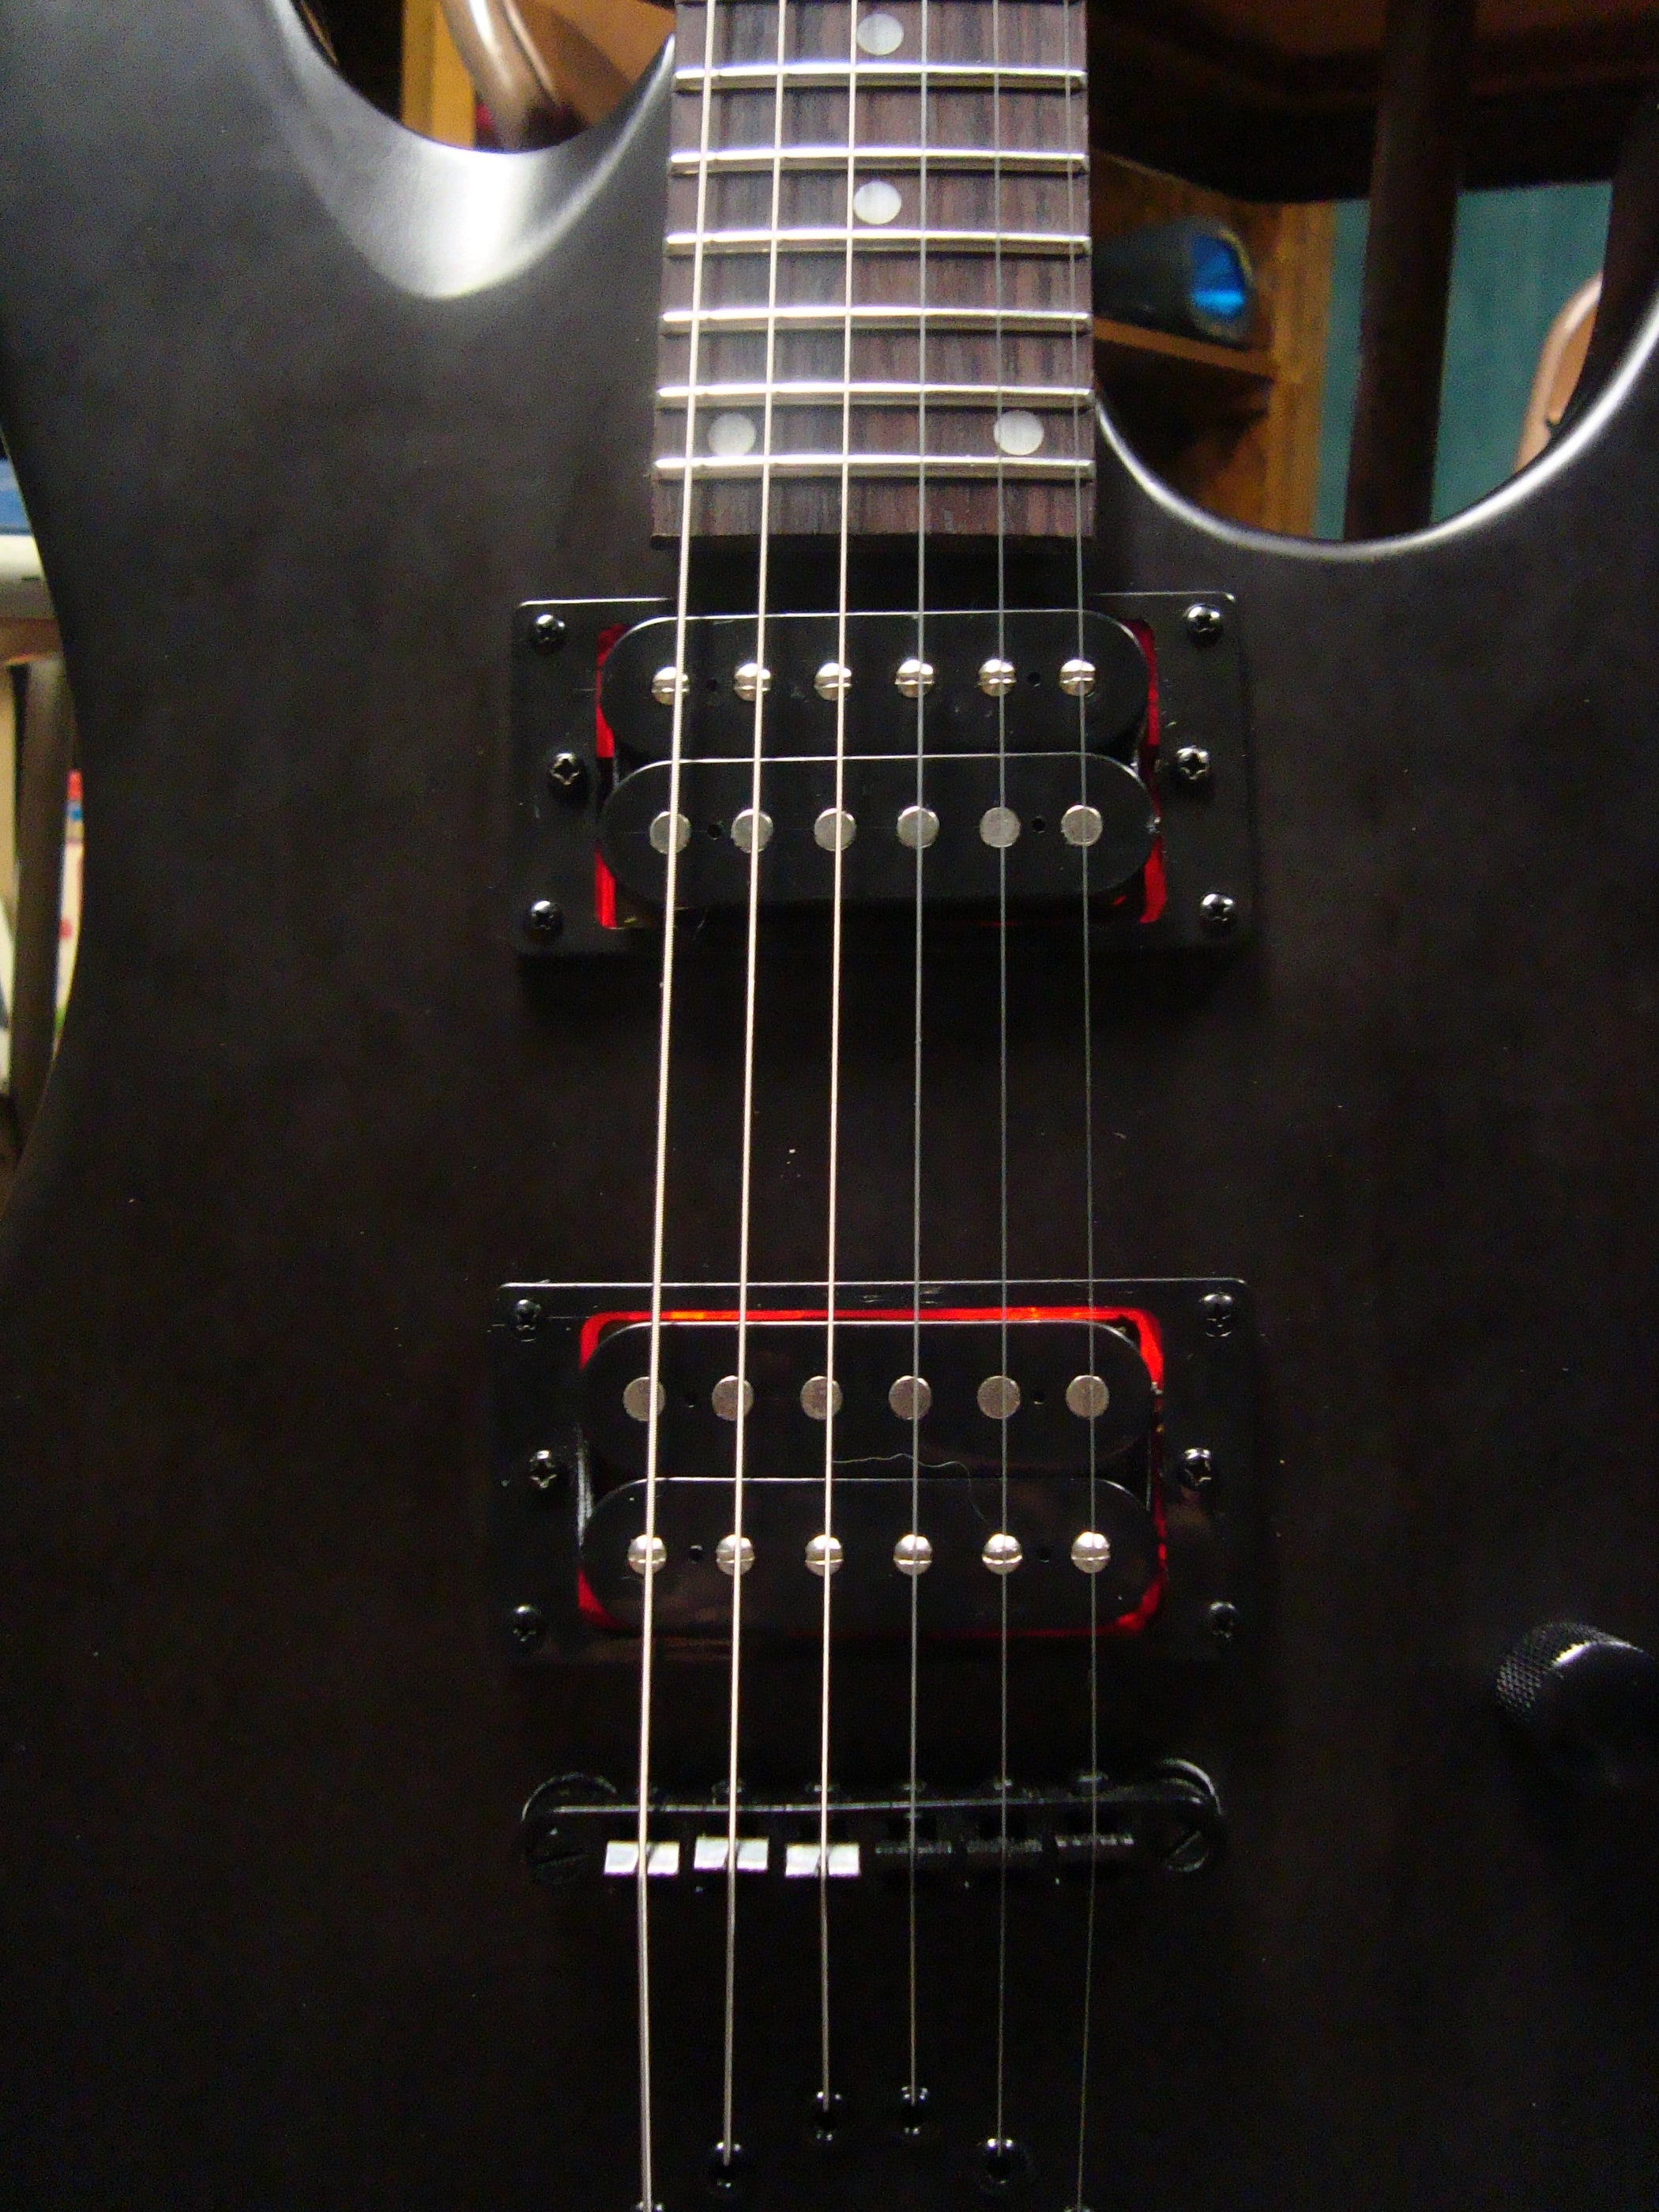 Led Electric Guitar Pickup Mod Updated With Schematic For Ibanez Input Jack Wiring Blinking Leds And Video 8 Steps